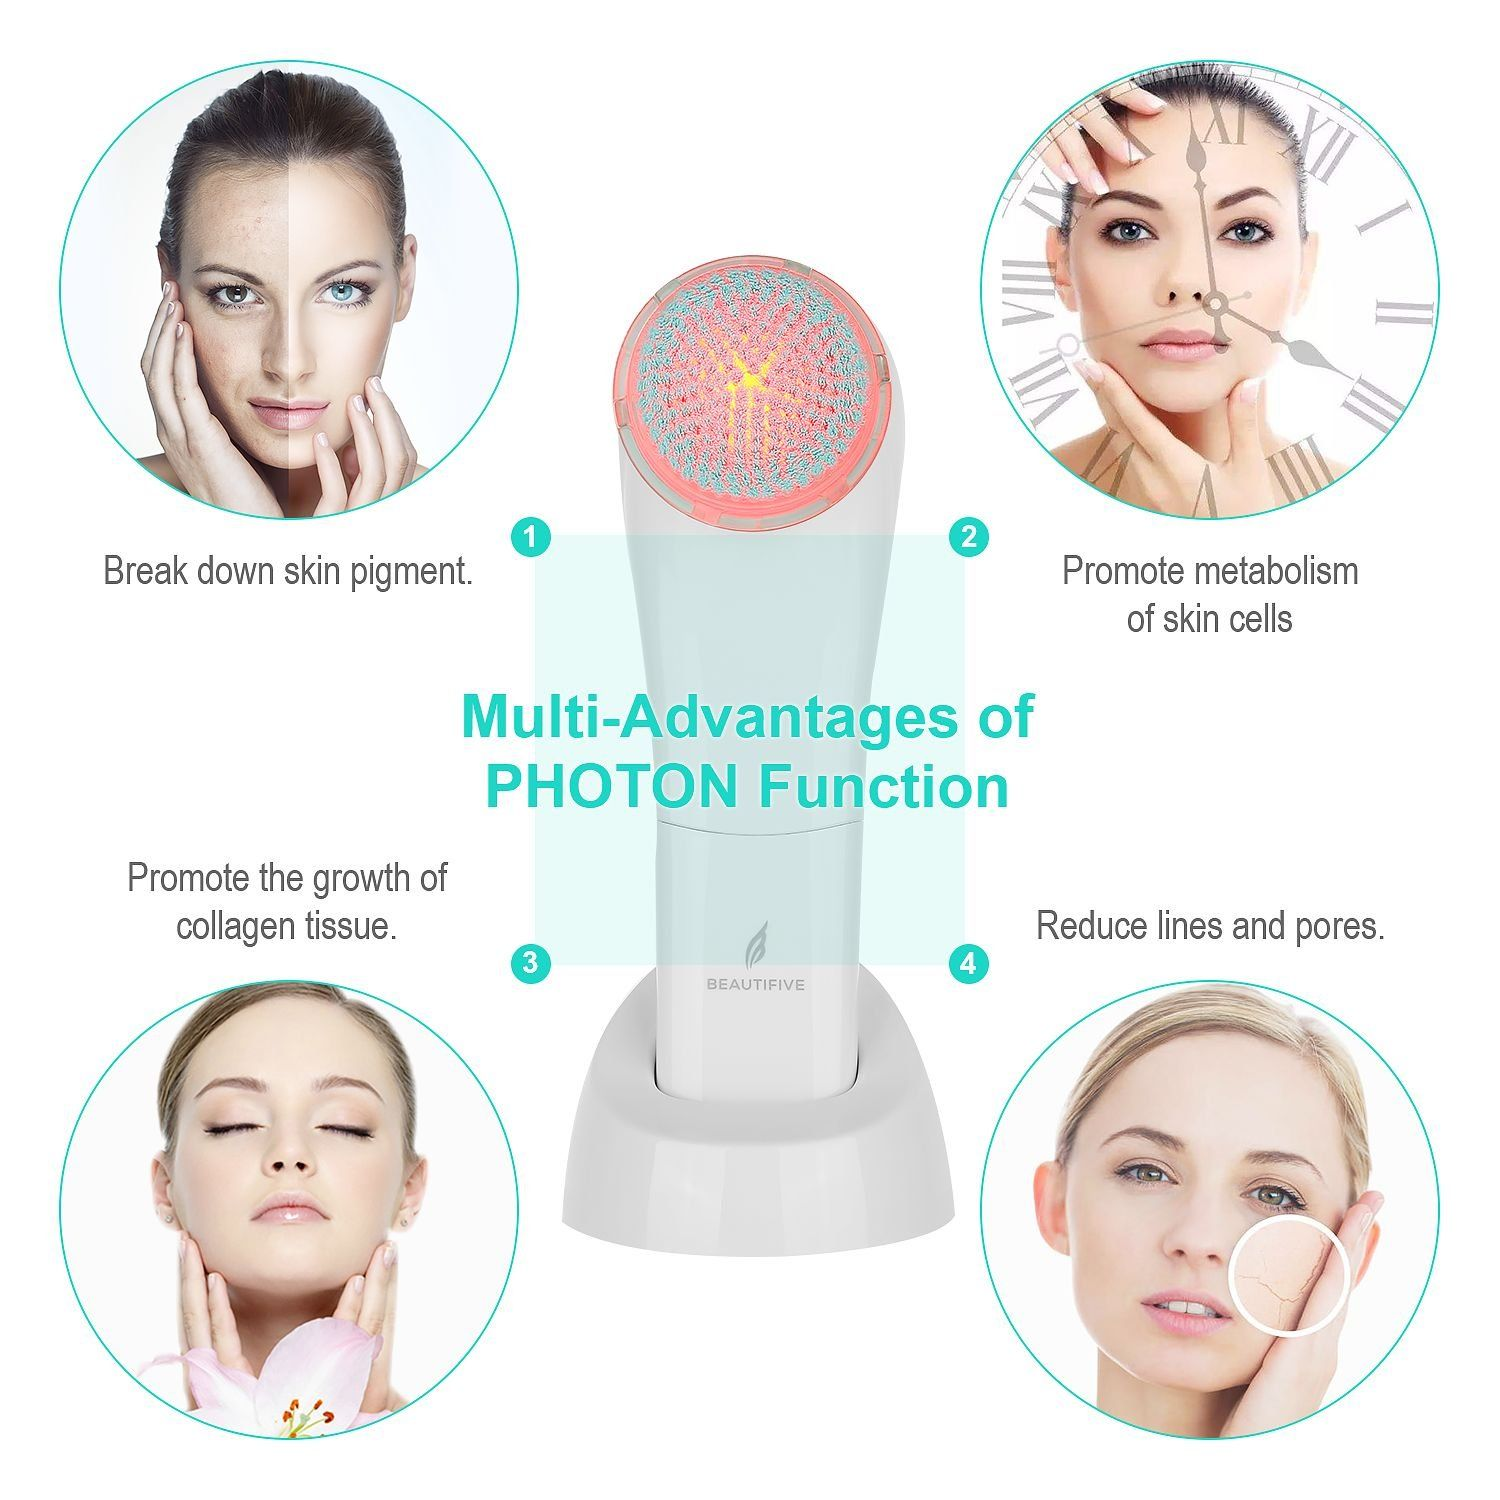 Sonic Facial Cleansing Brush With Photon Tech Waterproof Vibrating Face Brush Set With 2 Spe Sonic Facial Cleansing Brush Face Brush Set Facial Cleansing Brush